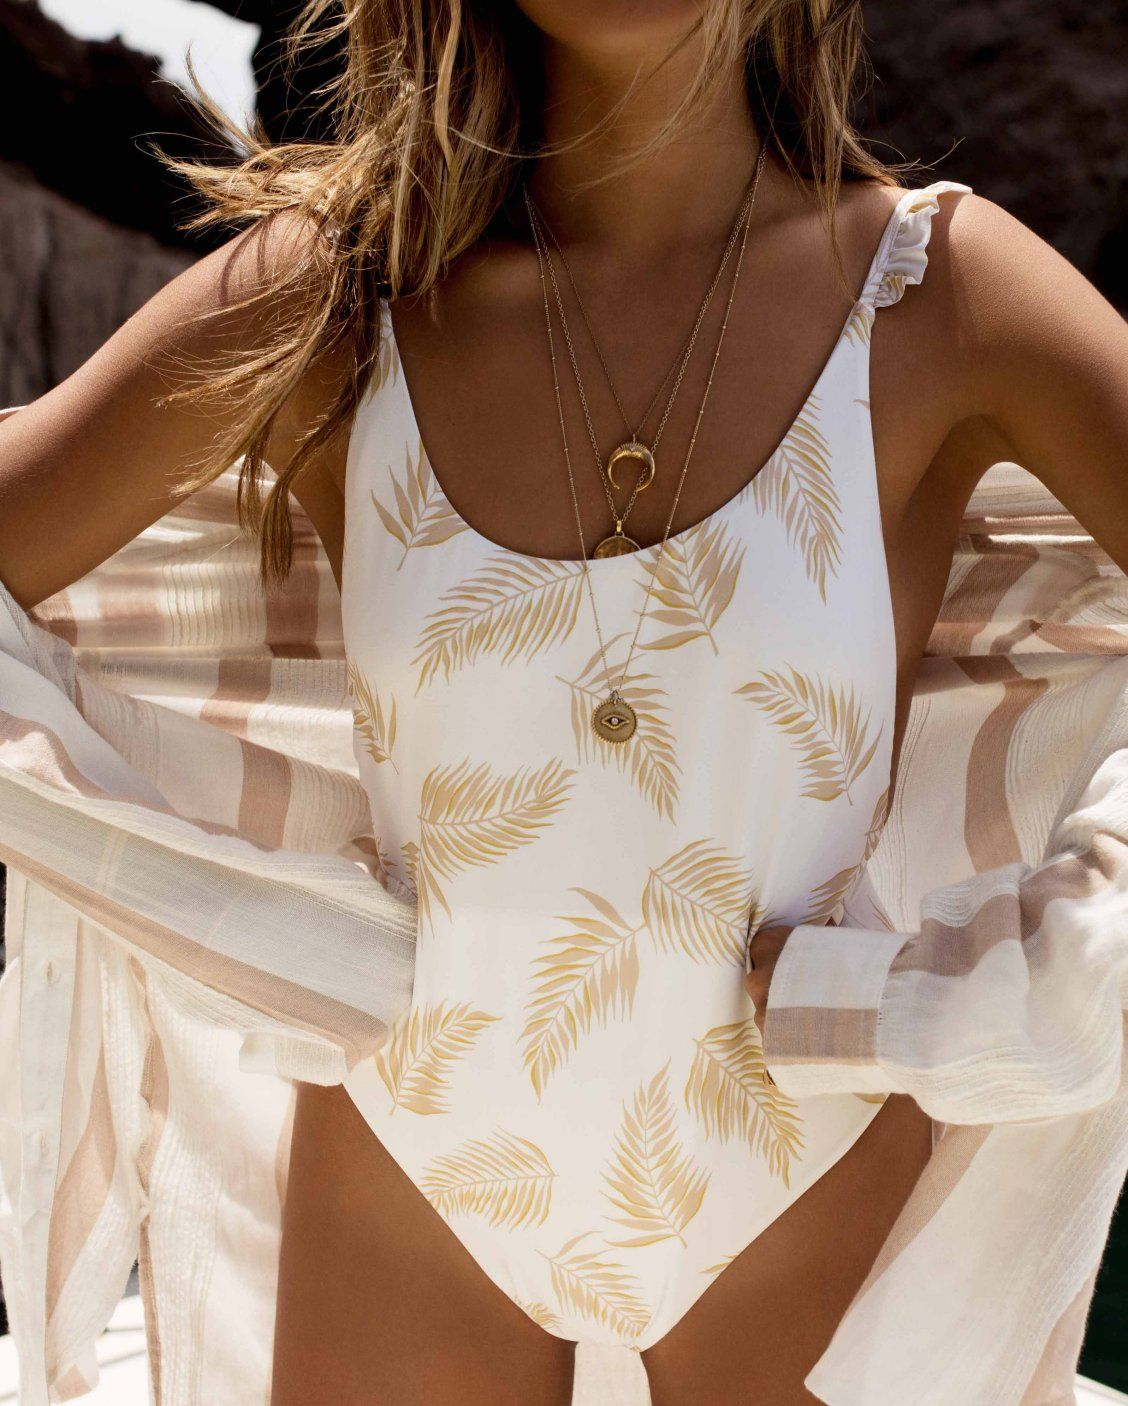 95c58e0cb521 It's all in the details in the Dos Palmas One Piece //  #BillabongxSincerelyJules